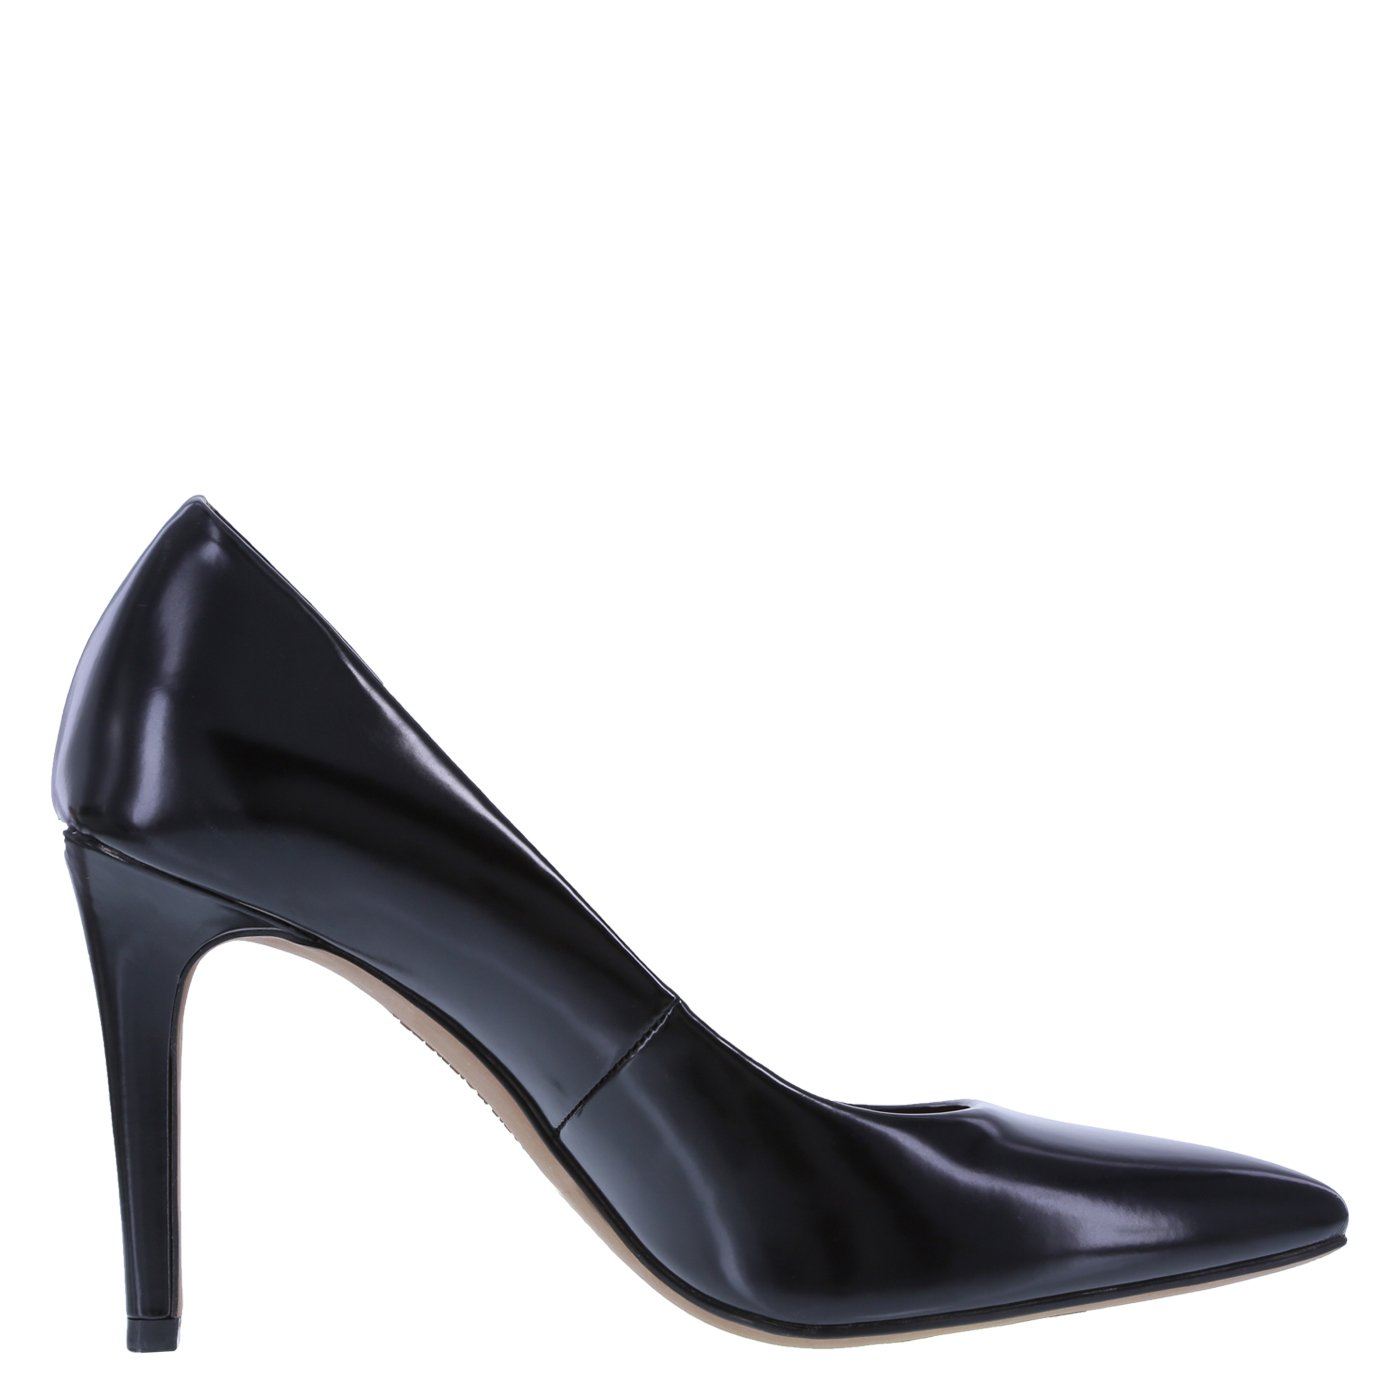 Christian Siriano for Payless Women's Smooth Black Women's Habit Pointed Pump 8.5 Regular by Christian Siriano for Payless (Image #2)